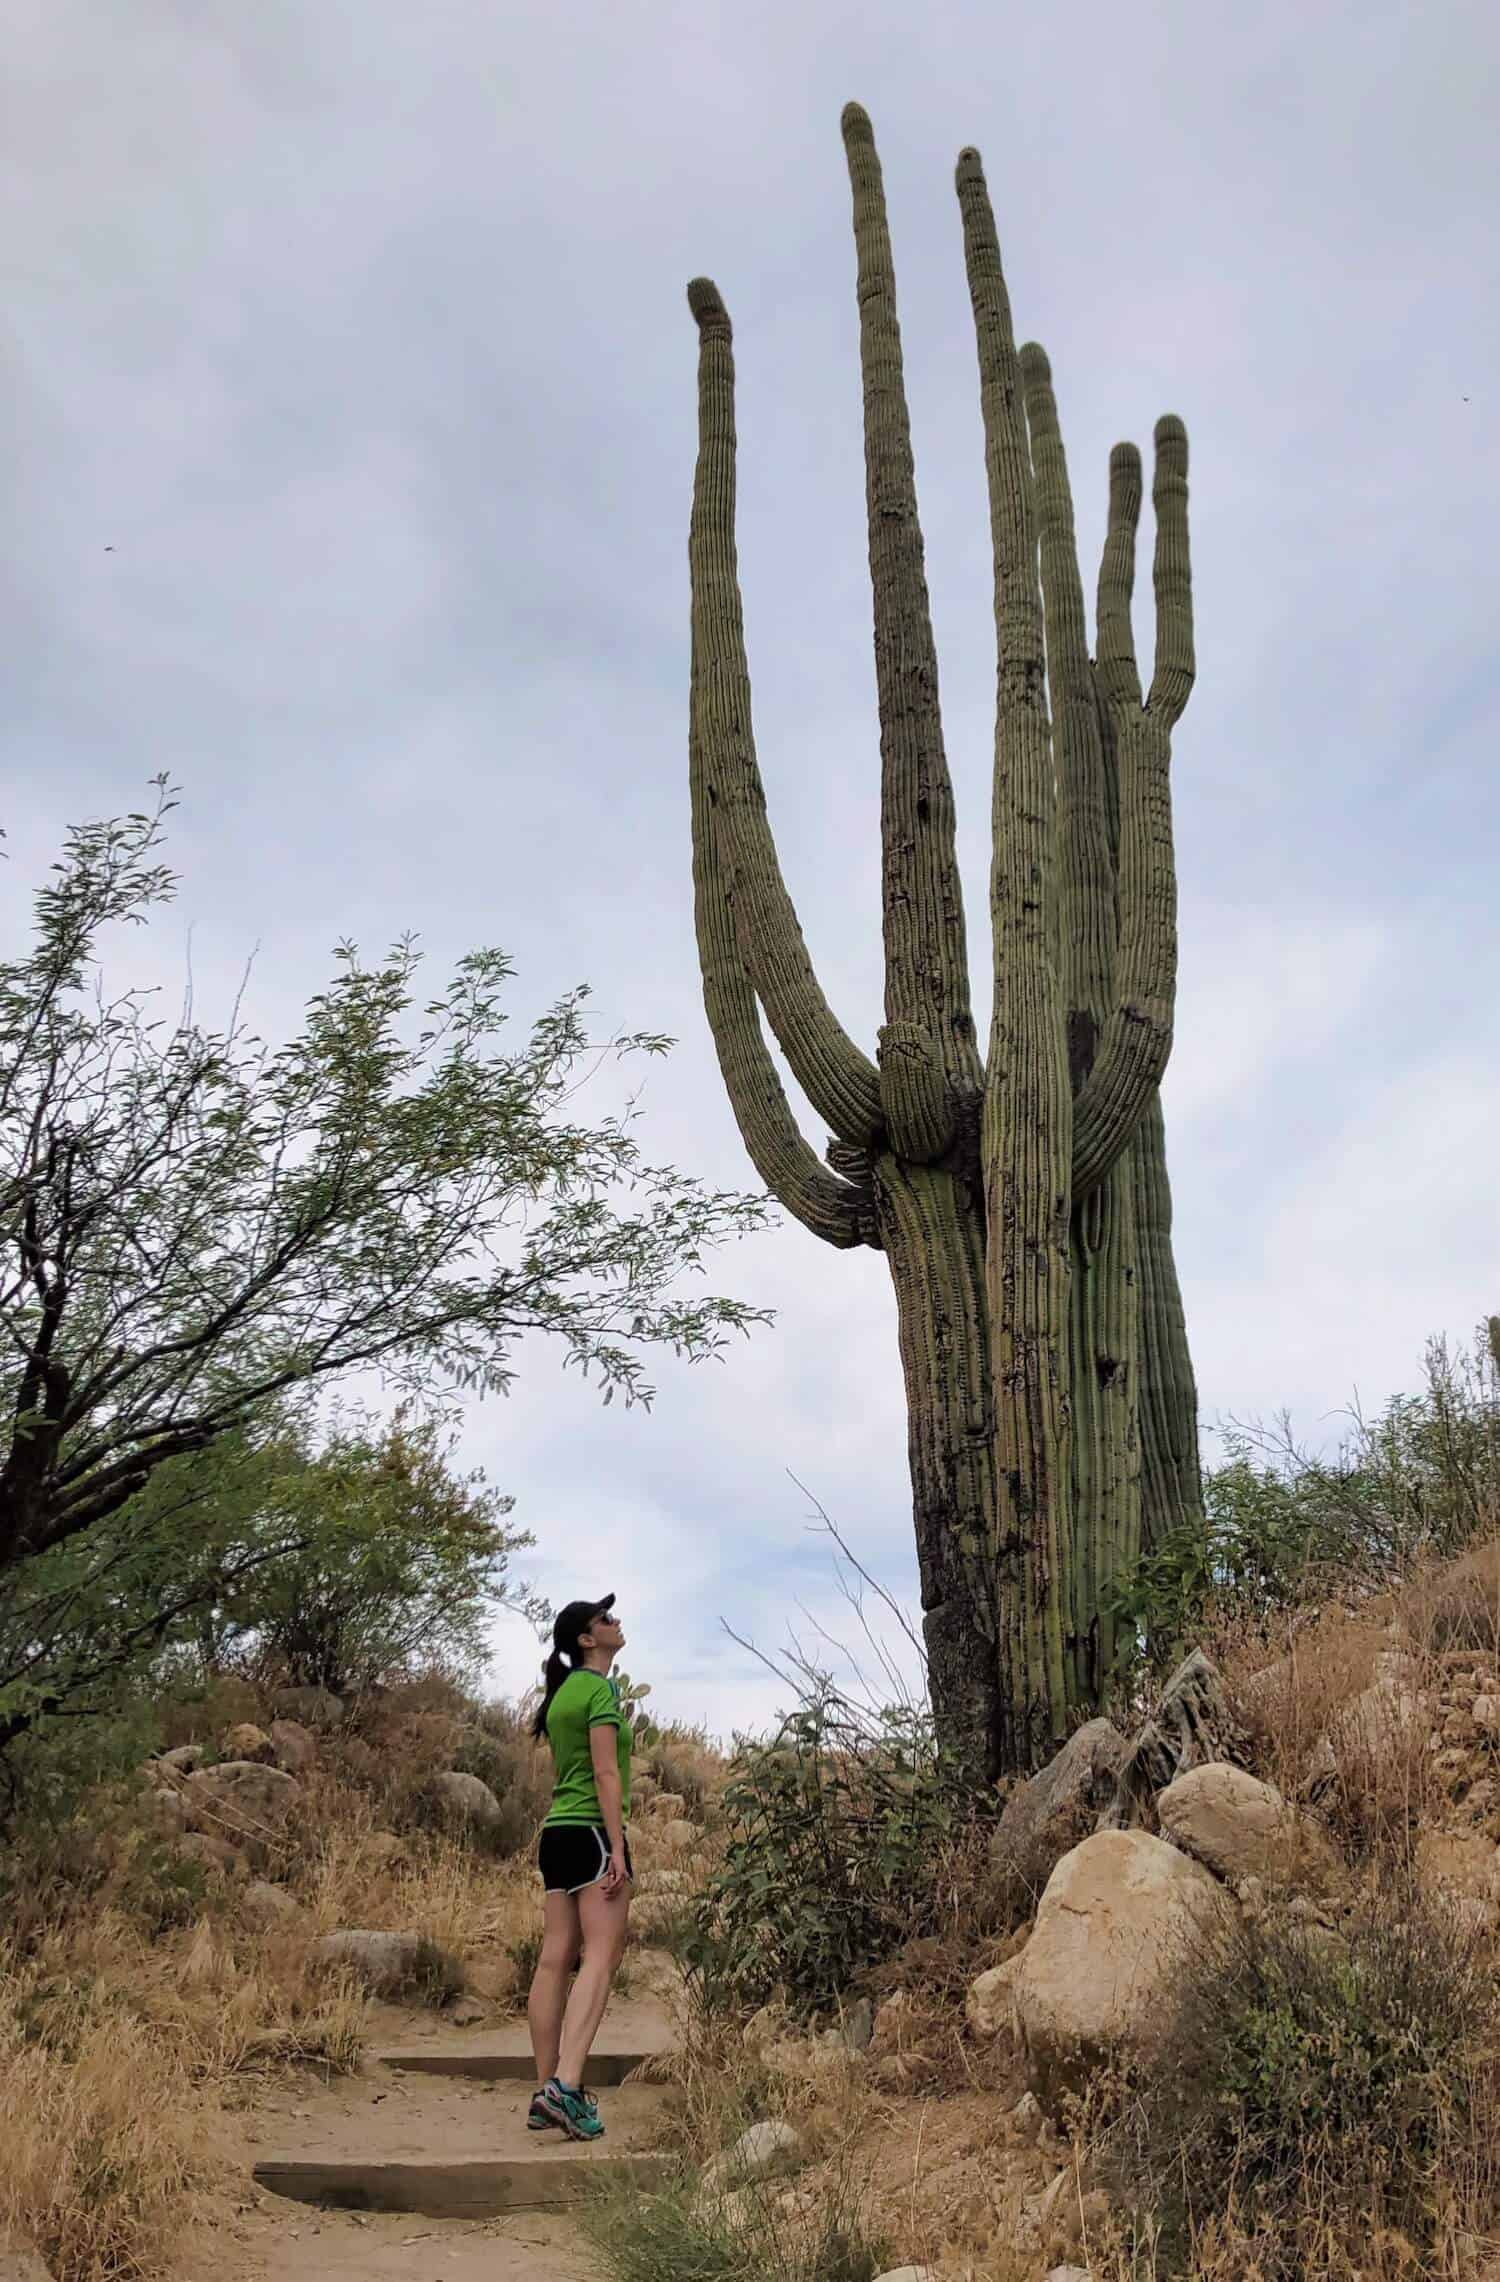 National Parks in the West - Saguaro